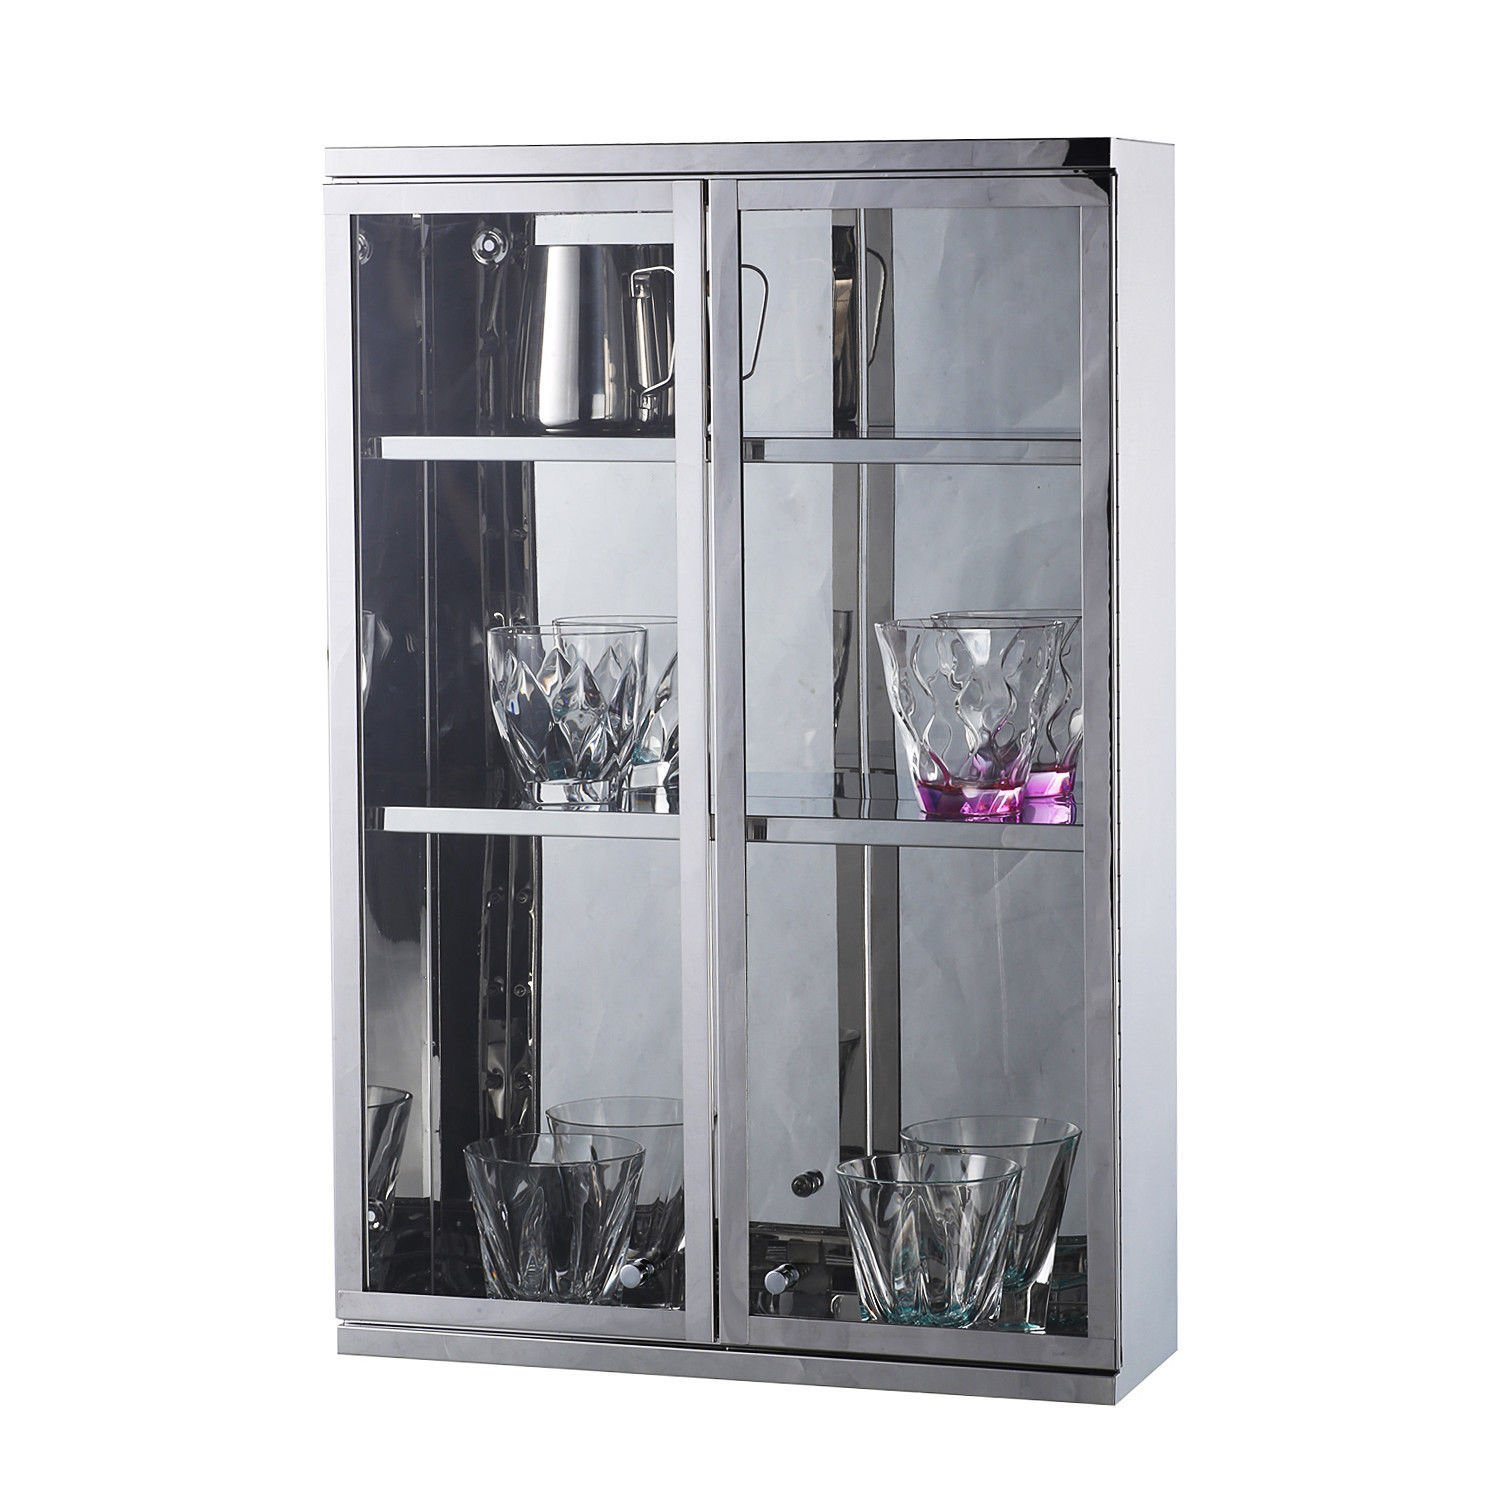 Modern Wall Mount Storage Cabinet Bathroom Stainless Steel w/ Shelves Silver With Ebook